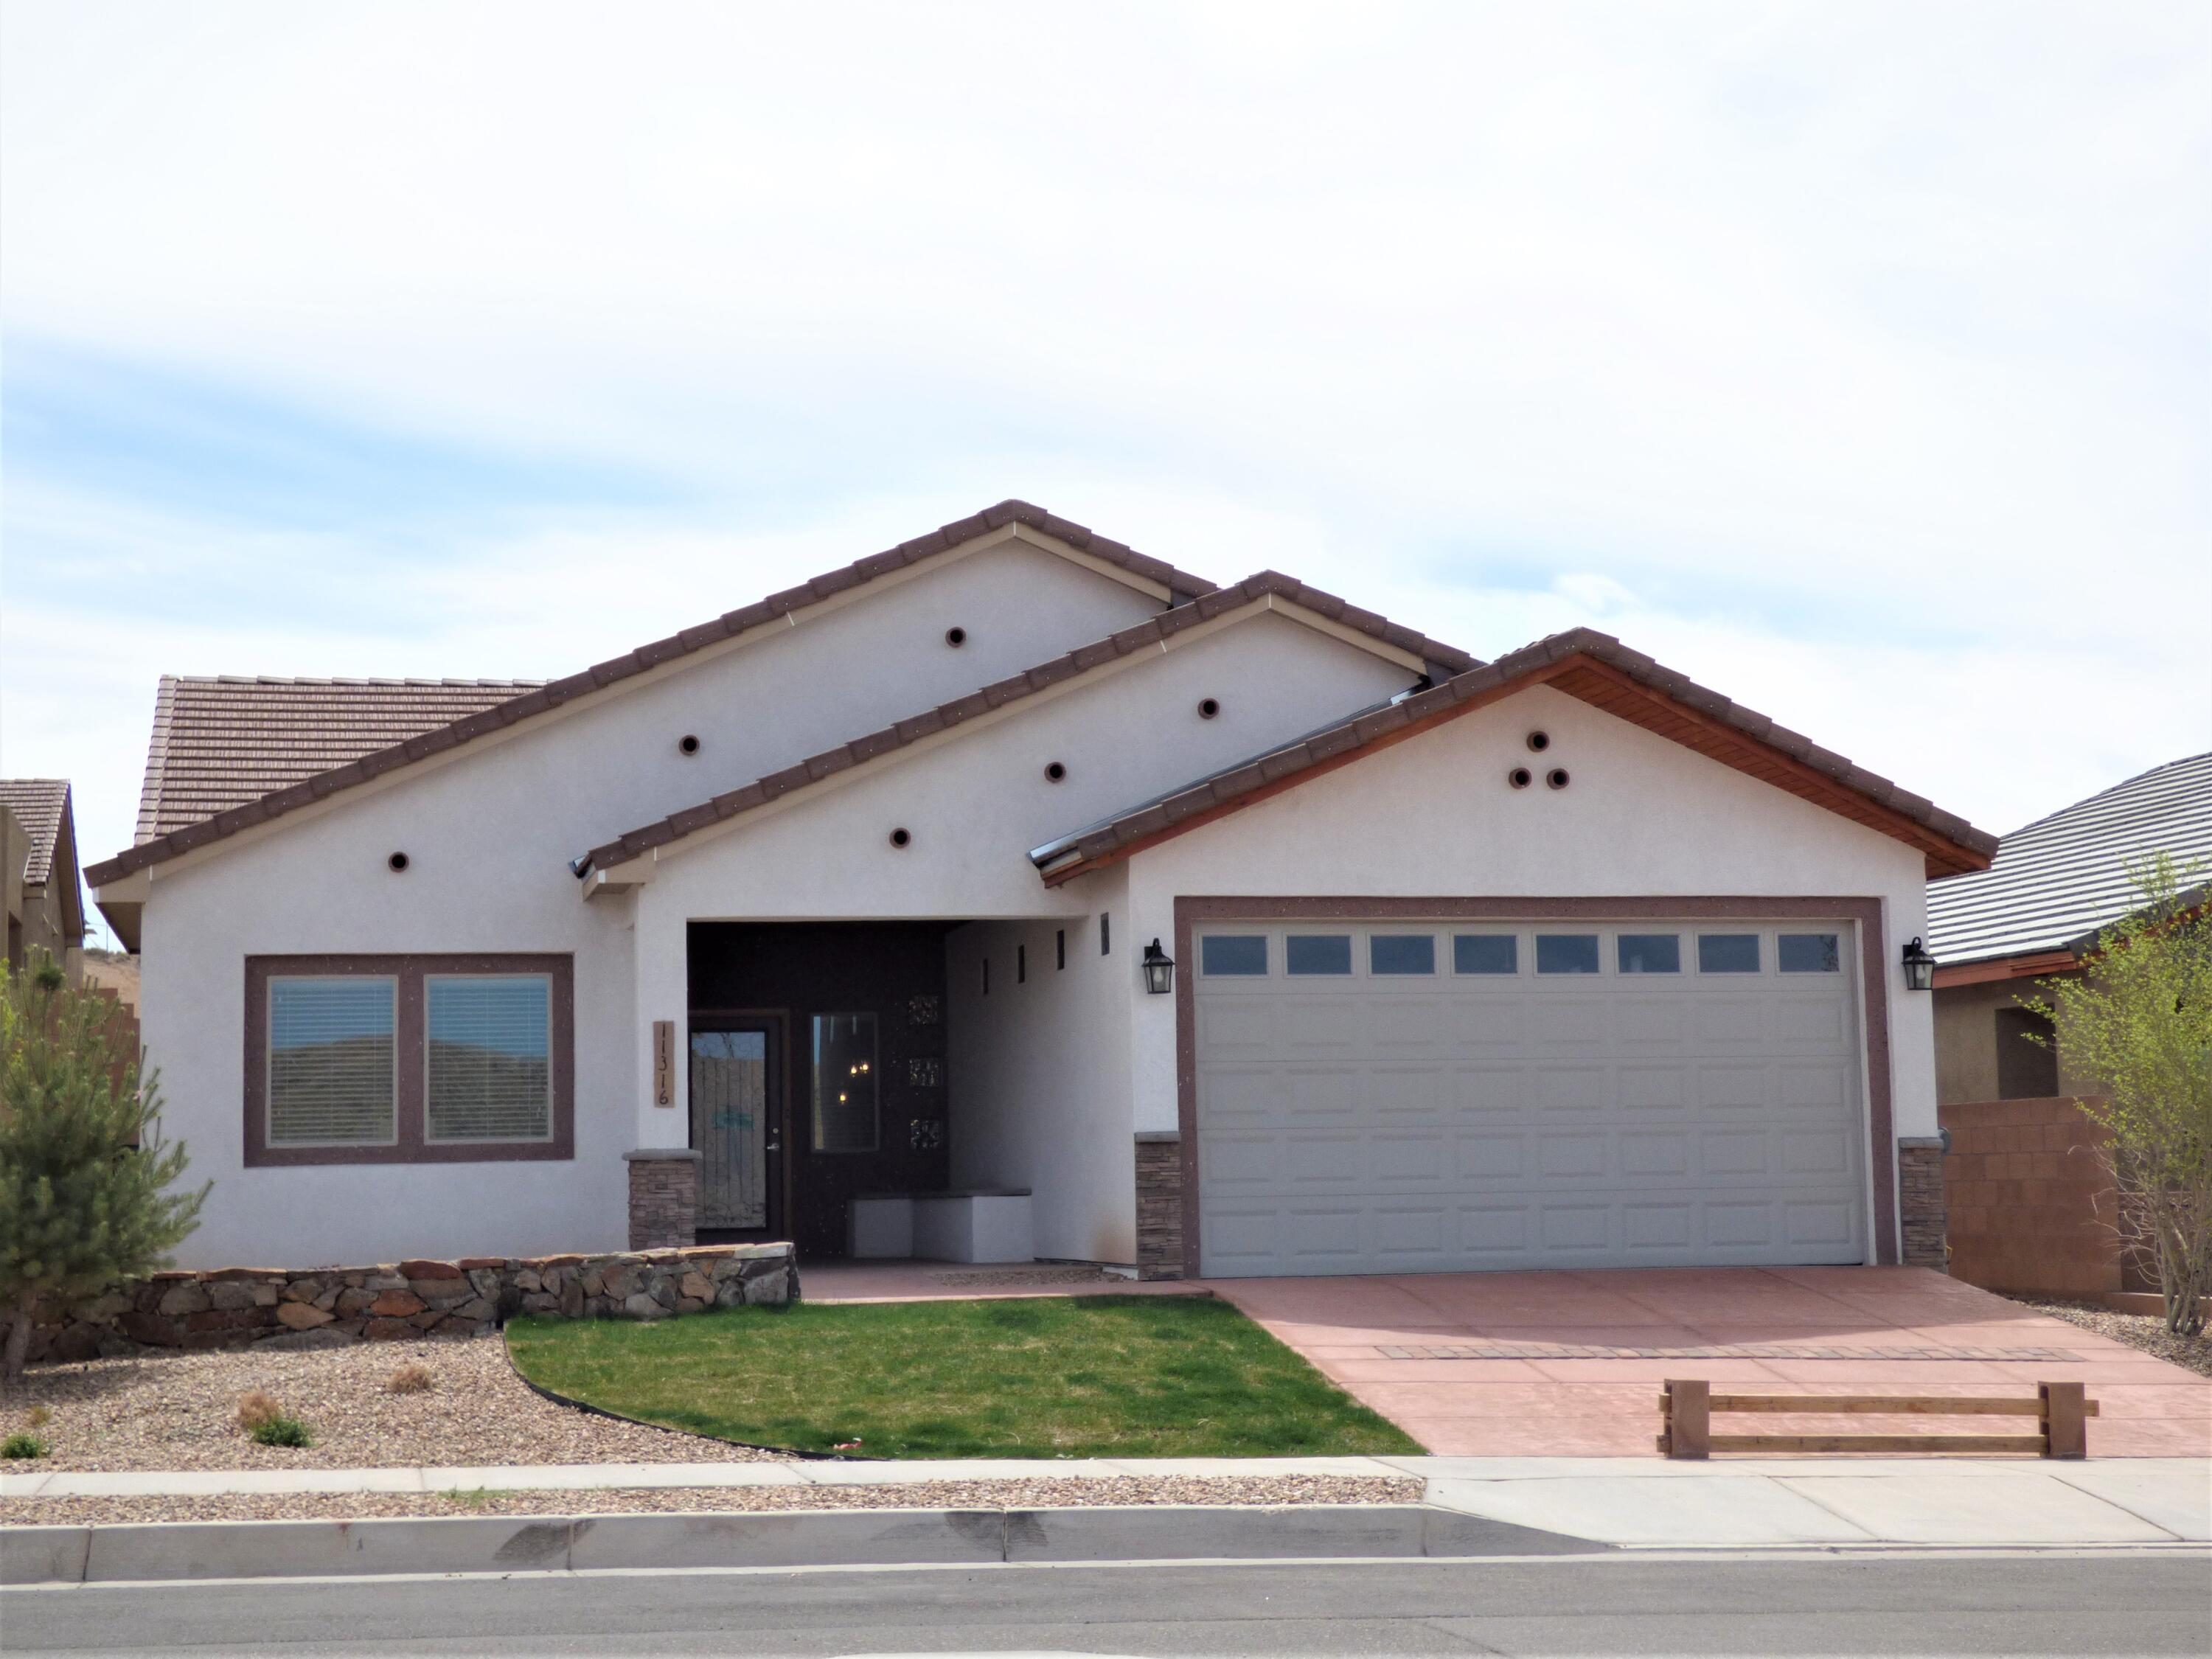 11316 MANZANO VISTA Avenue SE Property Photo - Albuquerque, NM real estate listing